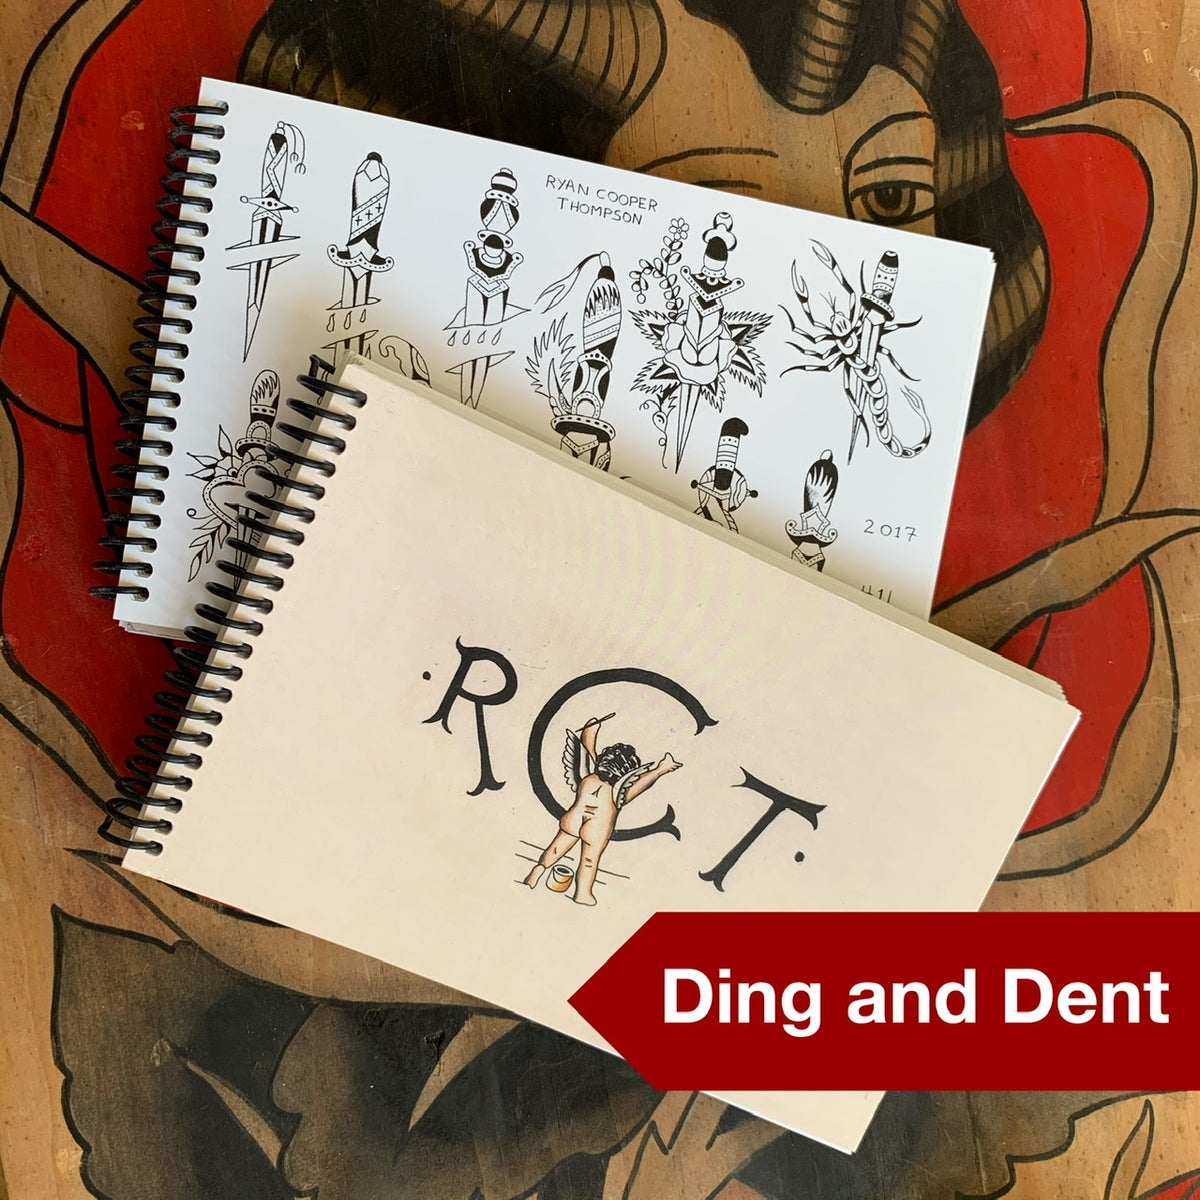 Image of Discounted Ding and Dent RCT Travel Size Flash Book.